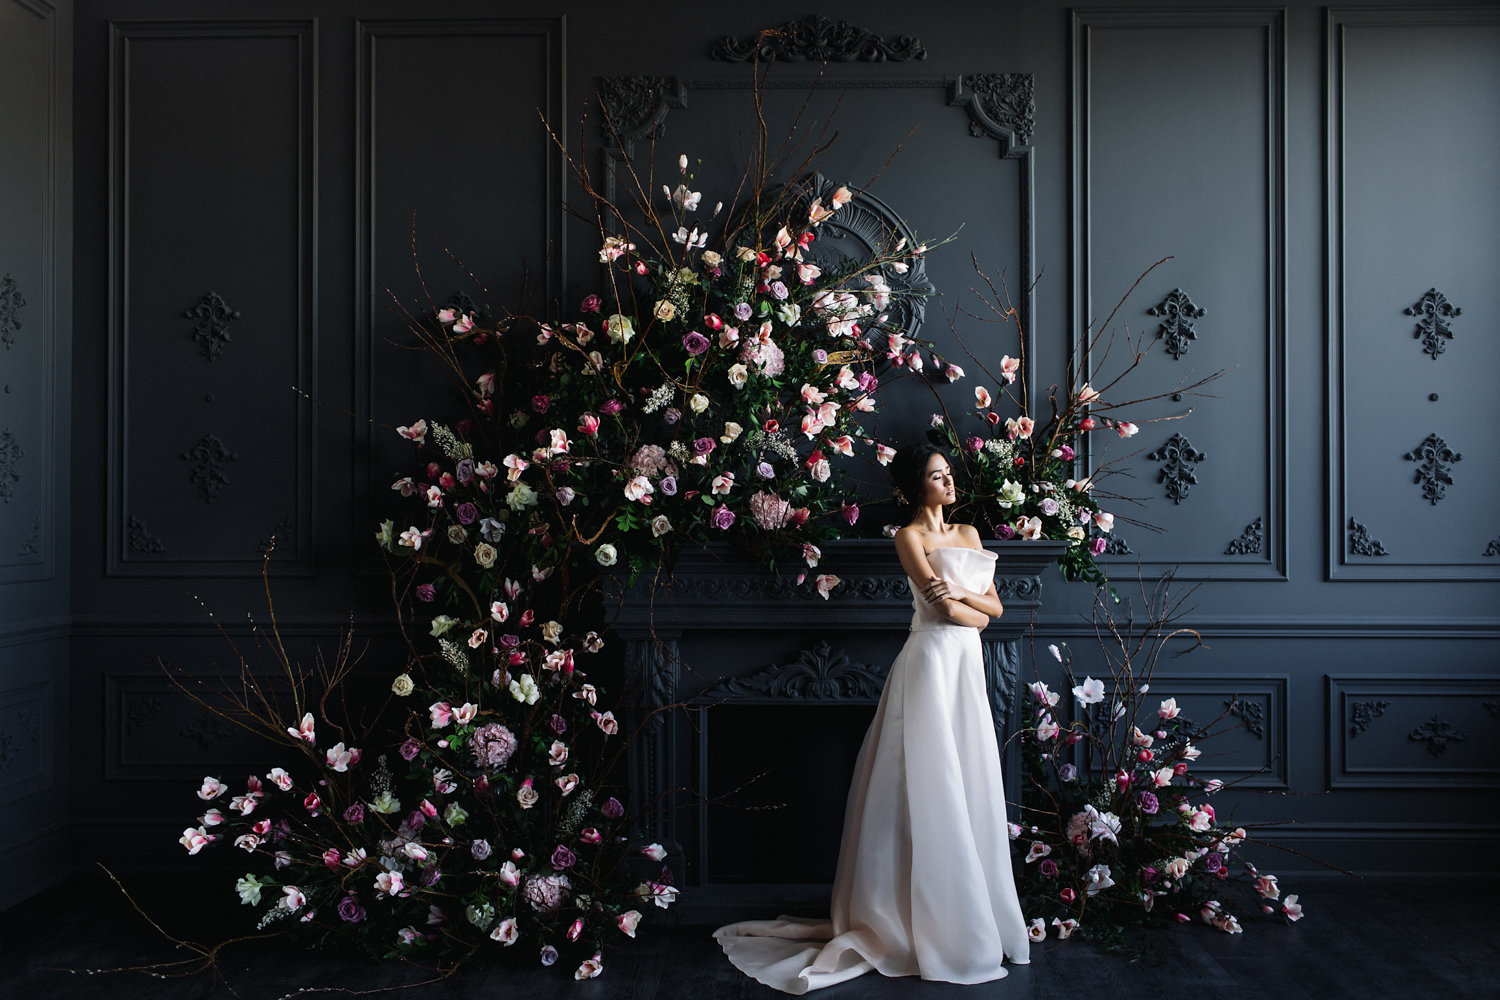 August In Bloom - Bride at ceremony - Magnolia Dreams (The Bridal Affair)